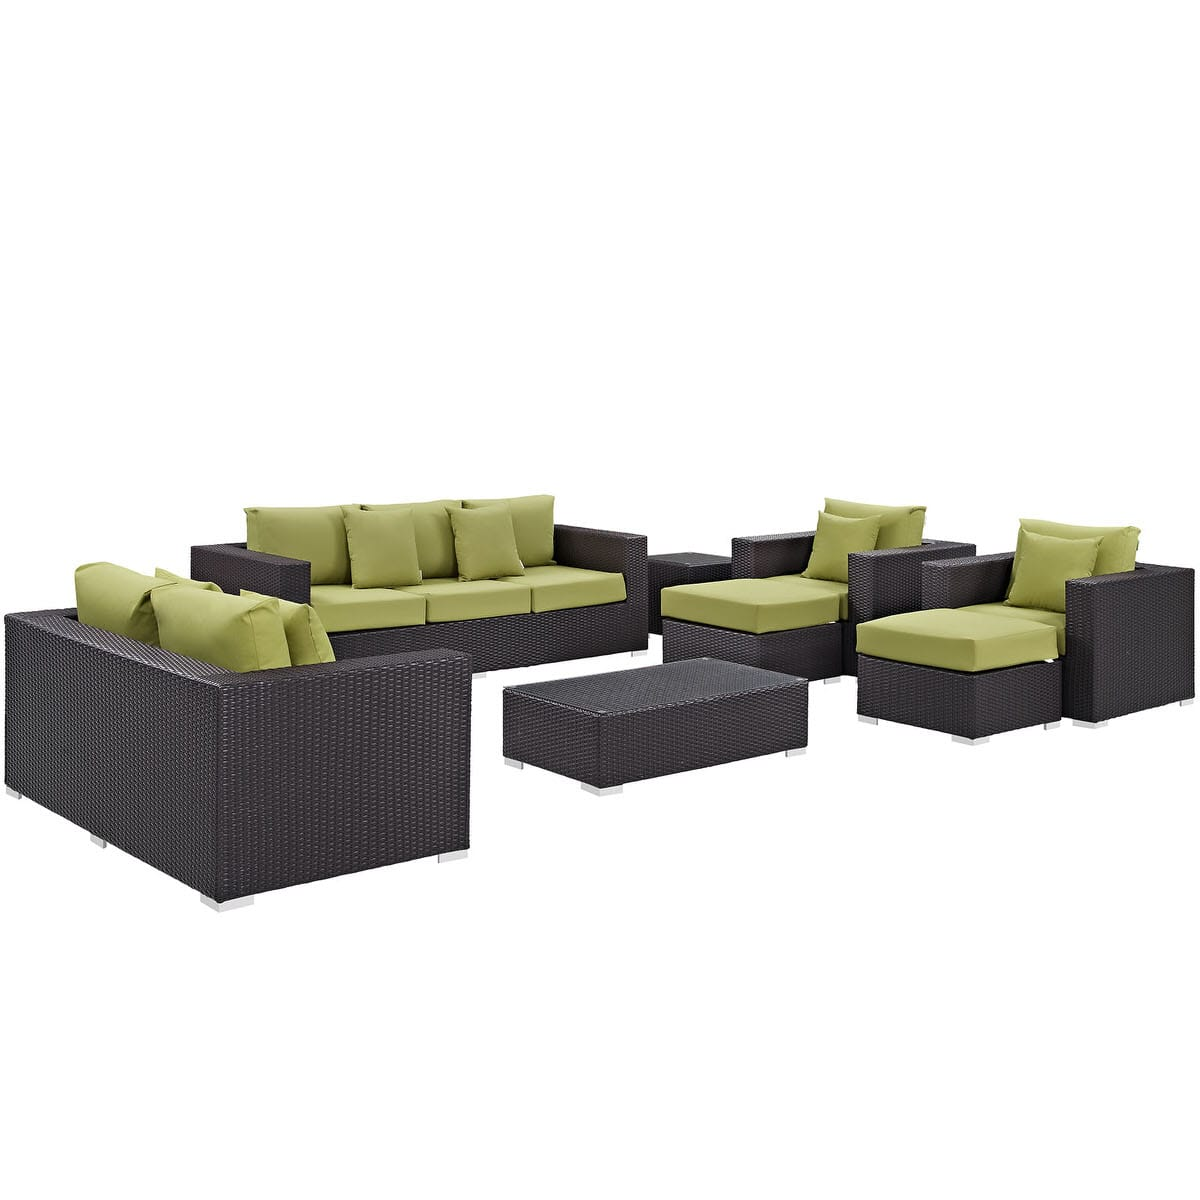 Convene 9 Piece Outdoor Patio Sofa Set Espresso Peridot by Modern Living